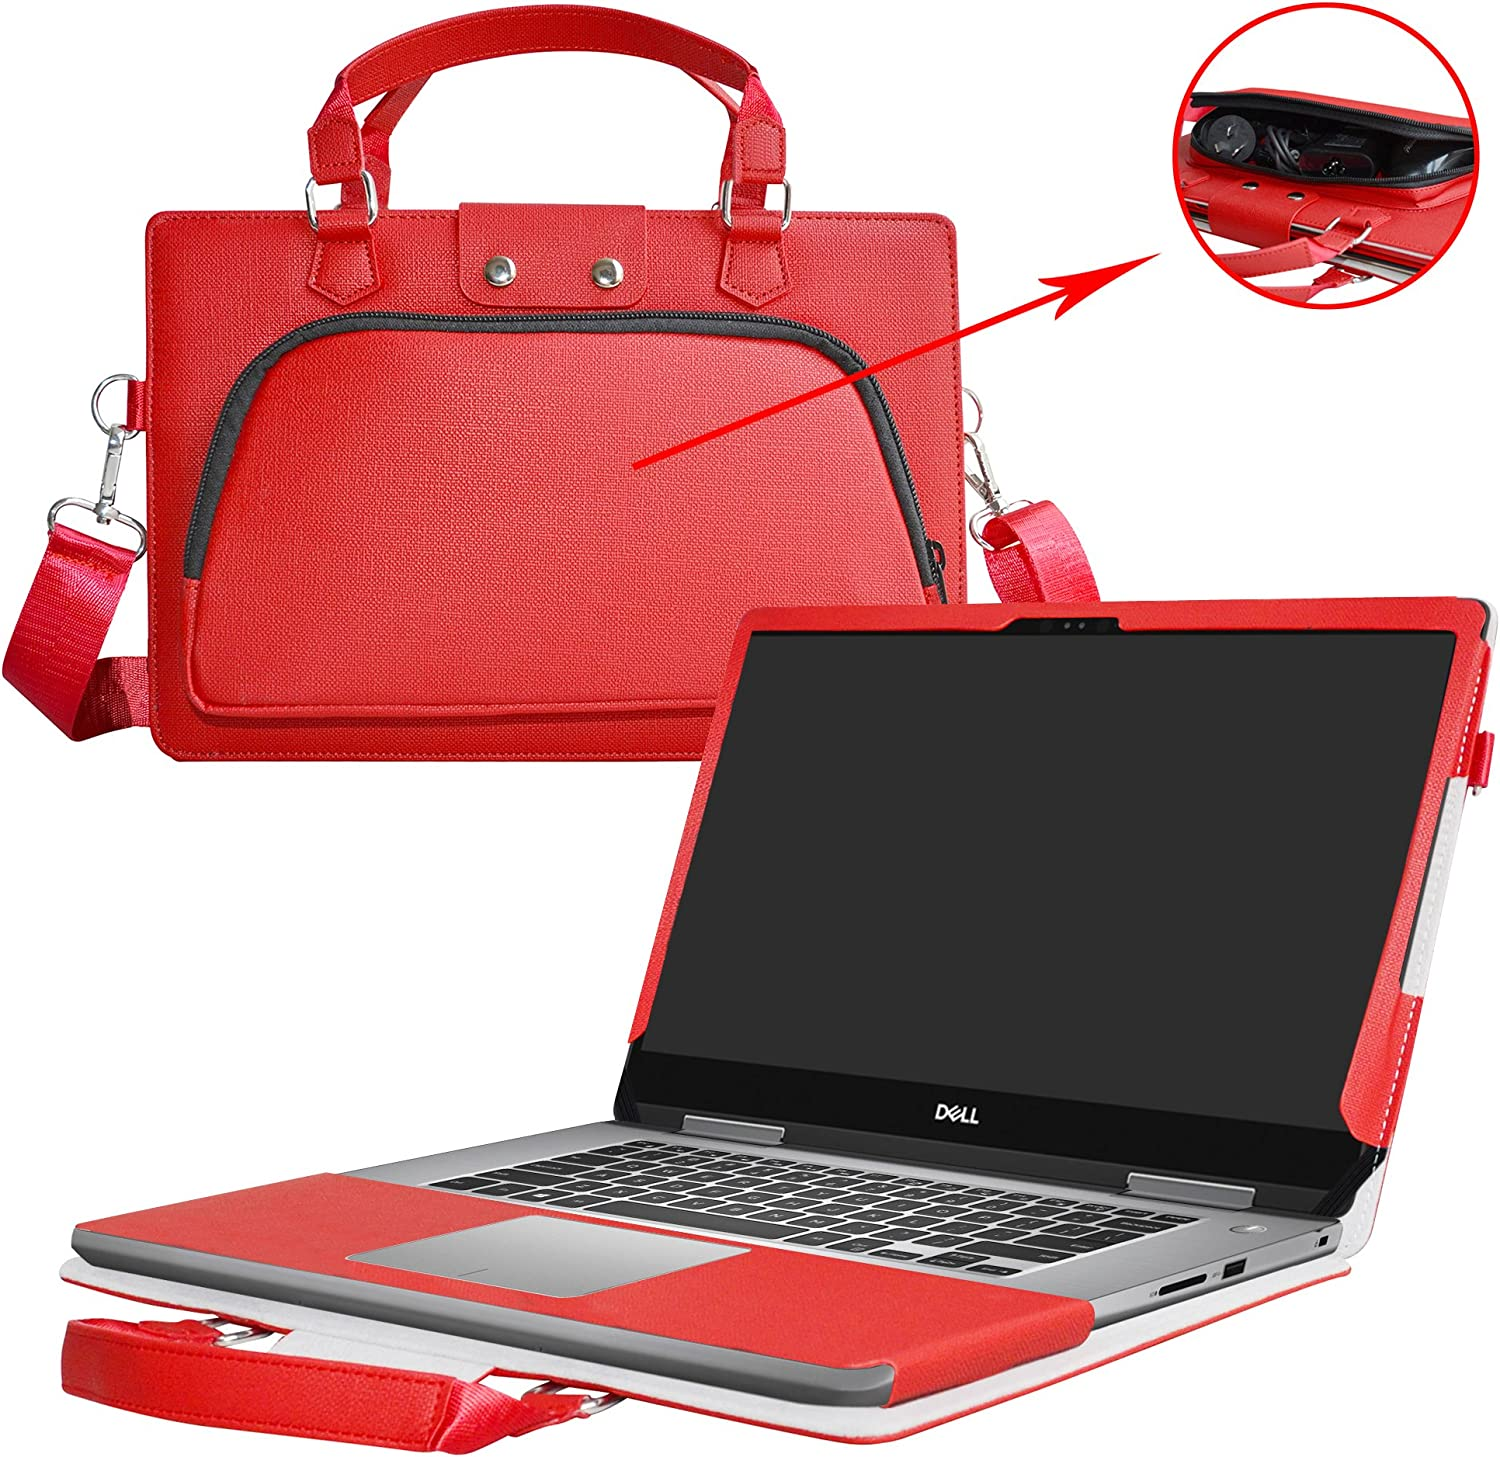 Inspiron 15 2-in-1 7579 7569 Case,2 in 1 Accurately Designed Protective PU Leather Cover + Portable Carrying Bag for 15.6